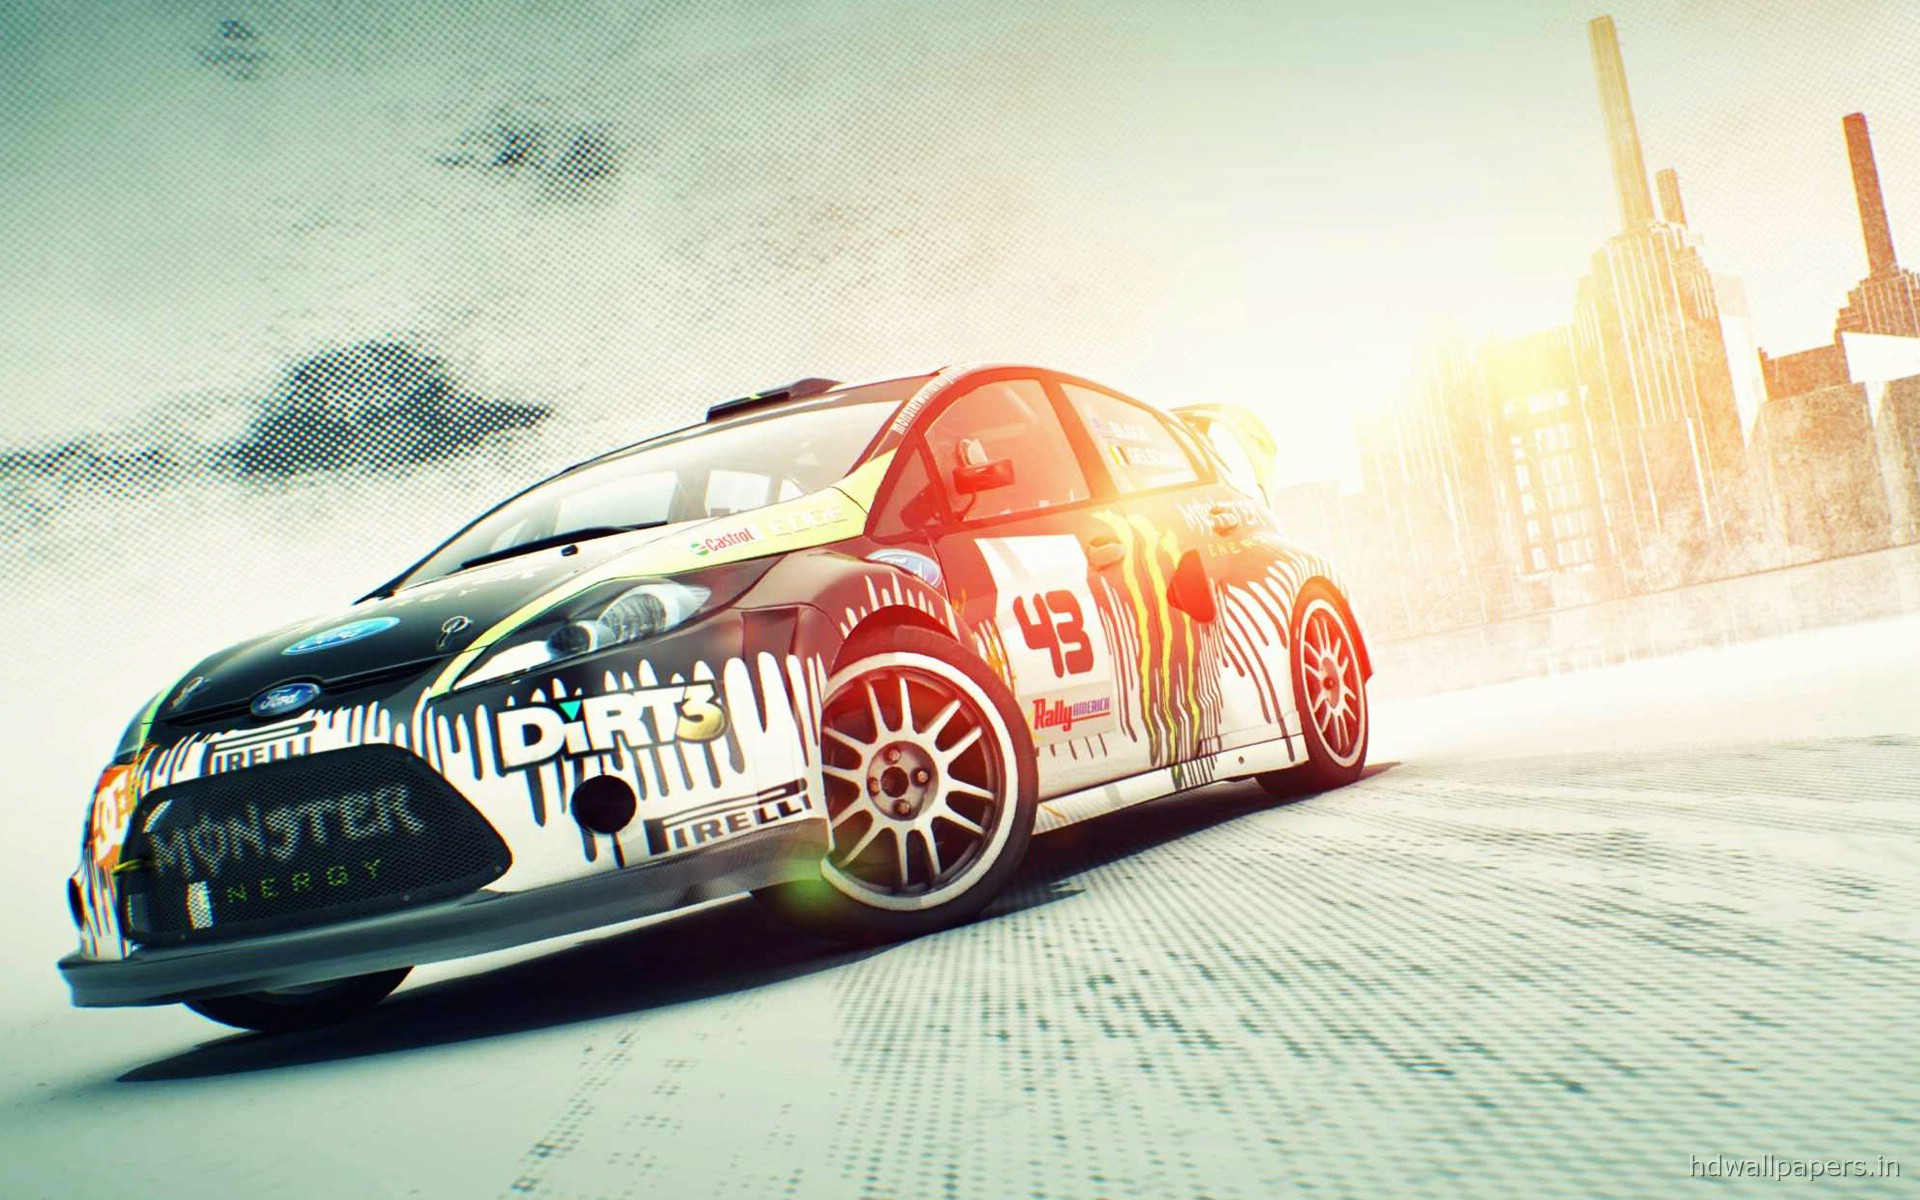 77 Dirt 3 Wallpaper On Wallpapersafari